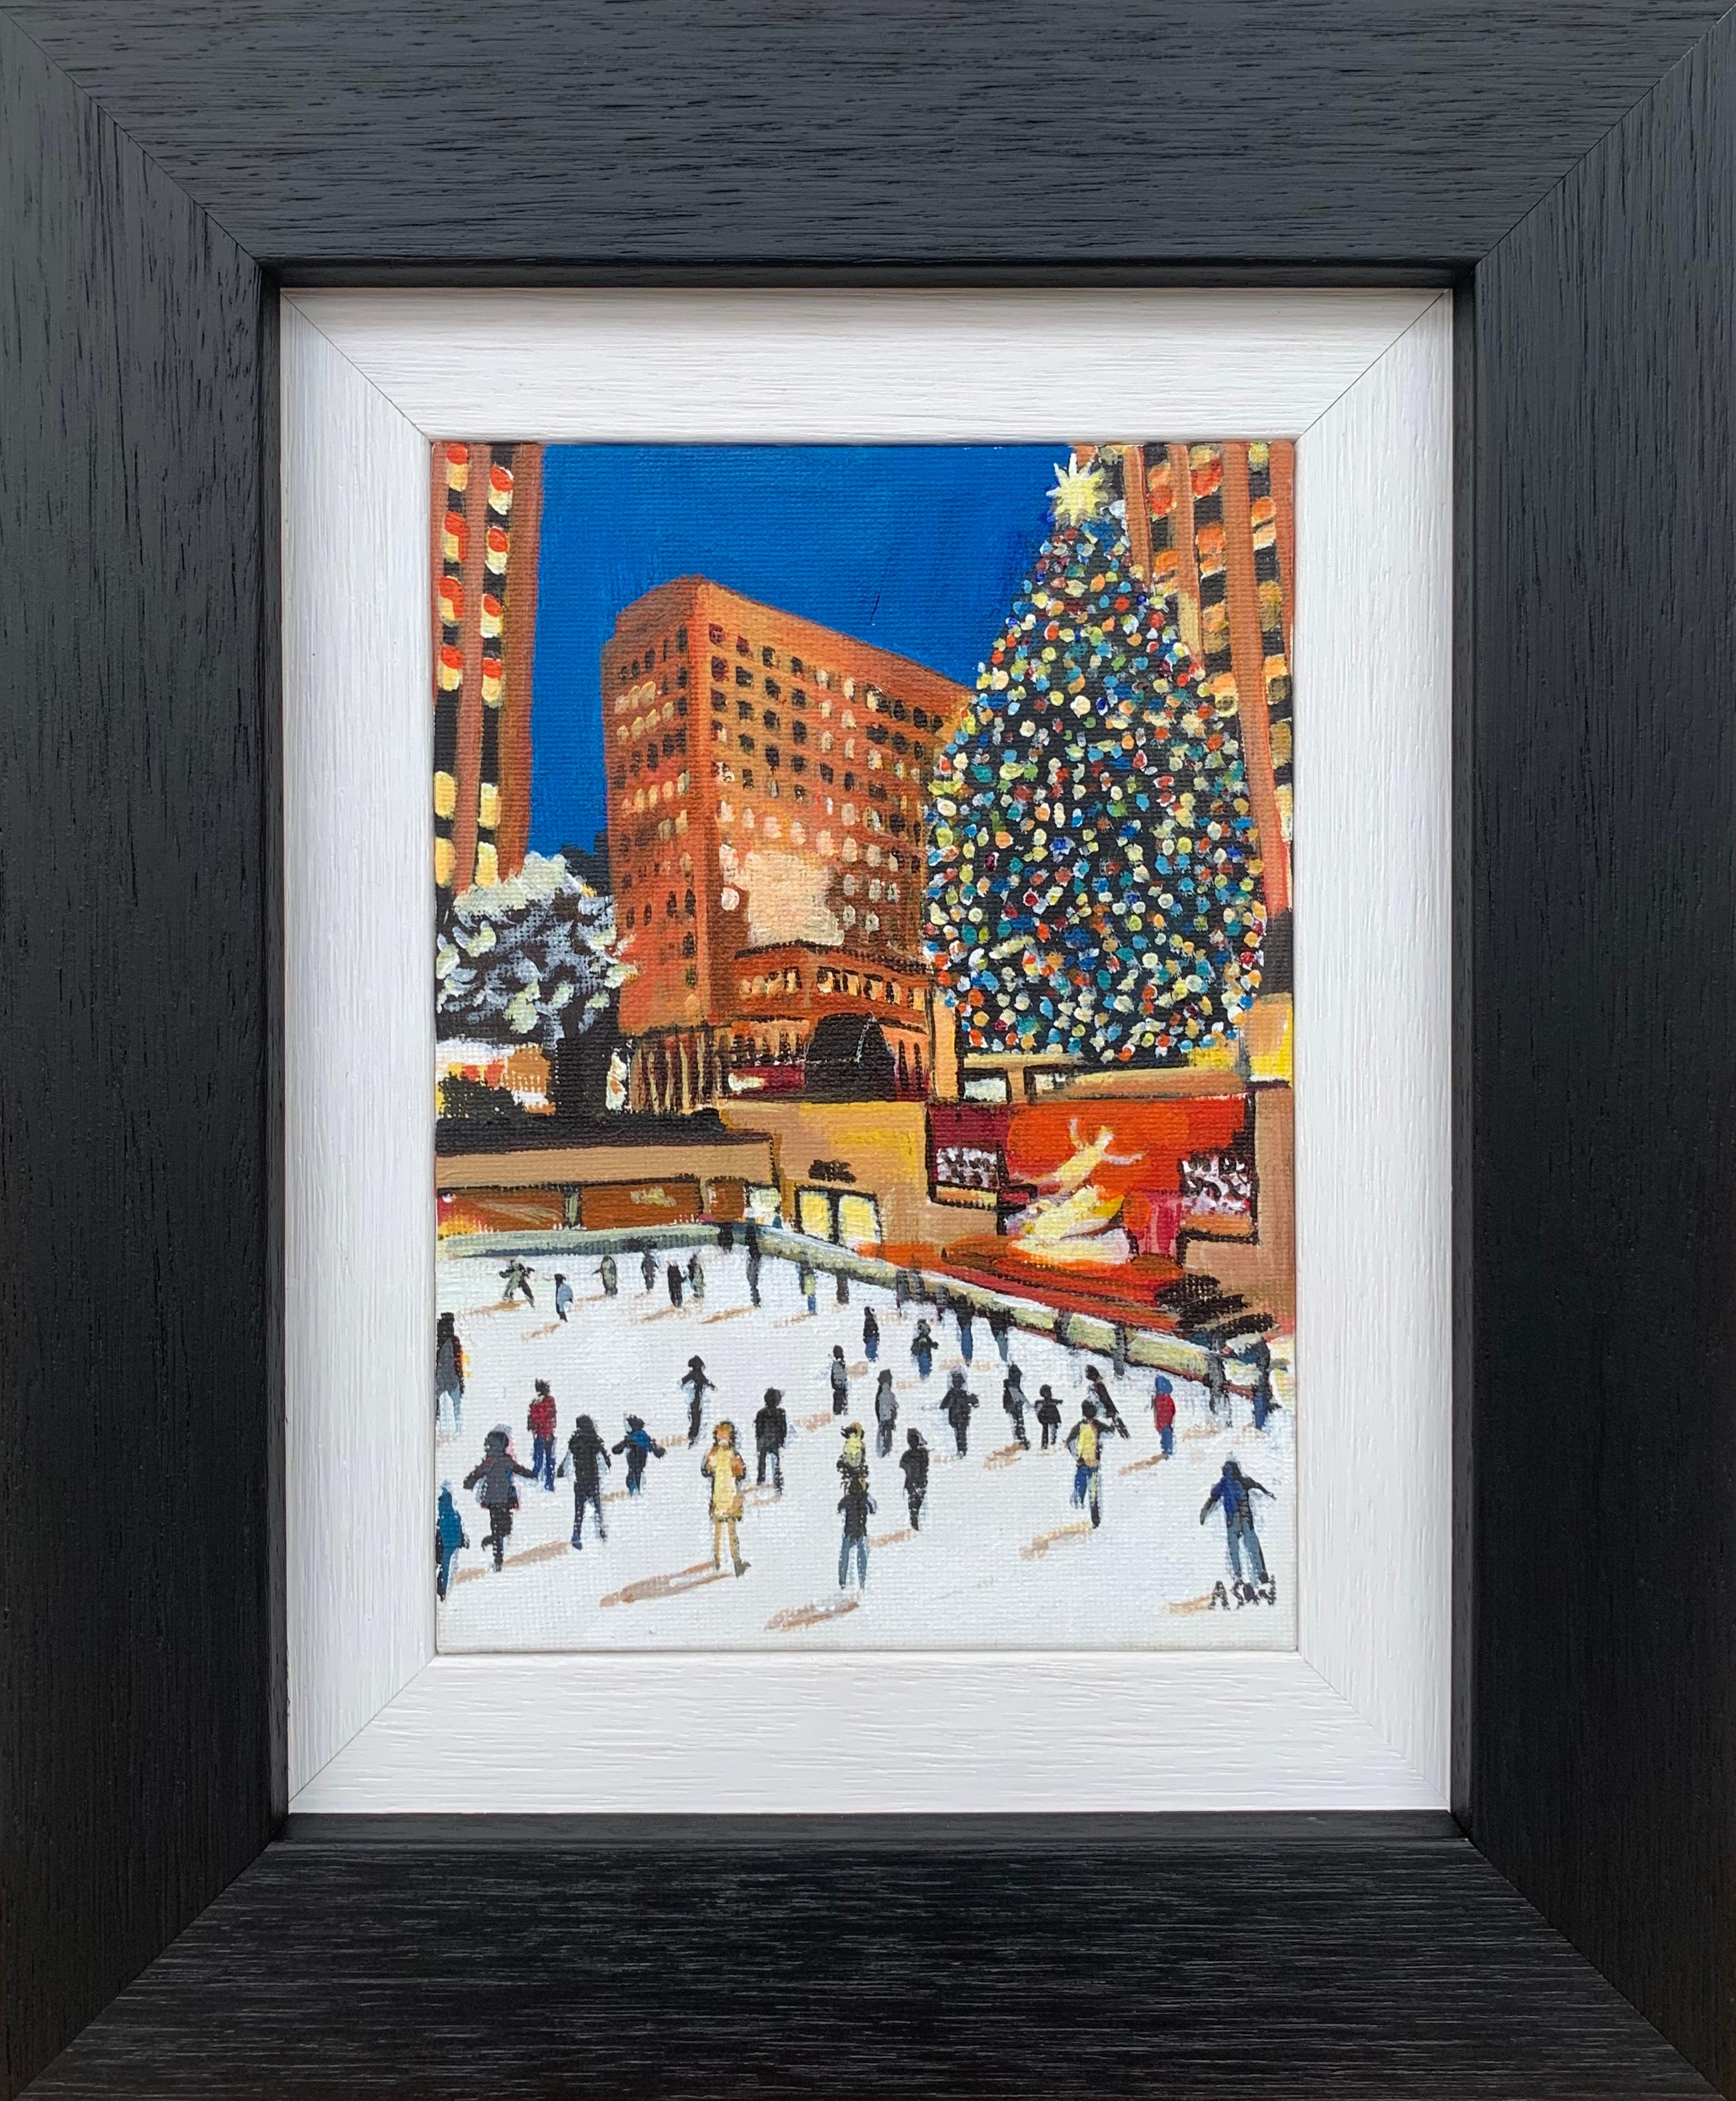 Miniature Original Painting of Central Park Christmas New York by British Artist